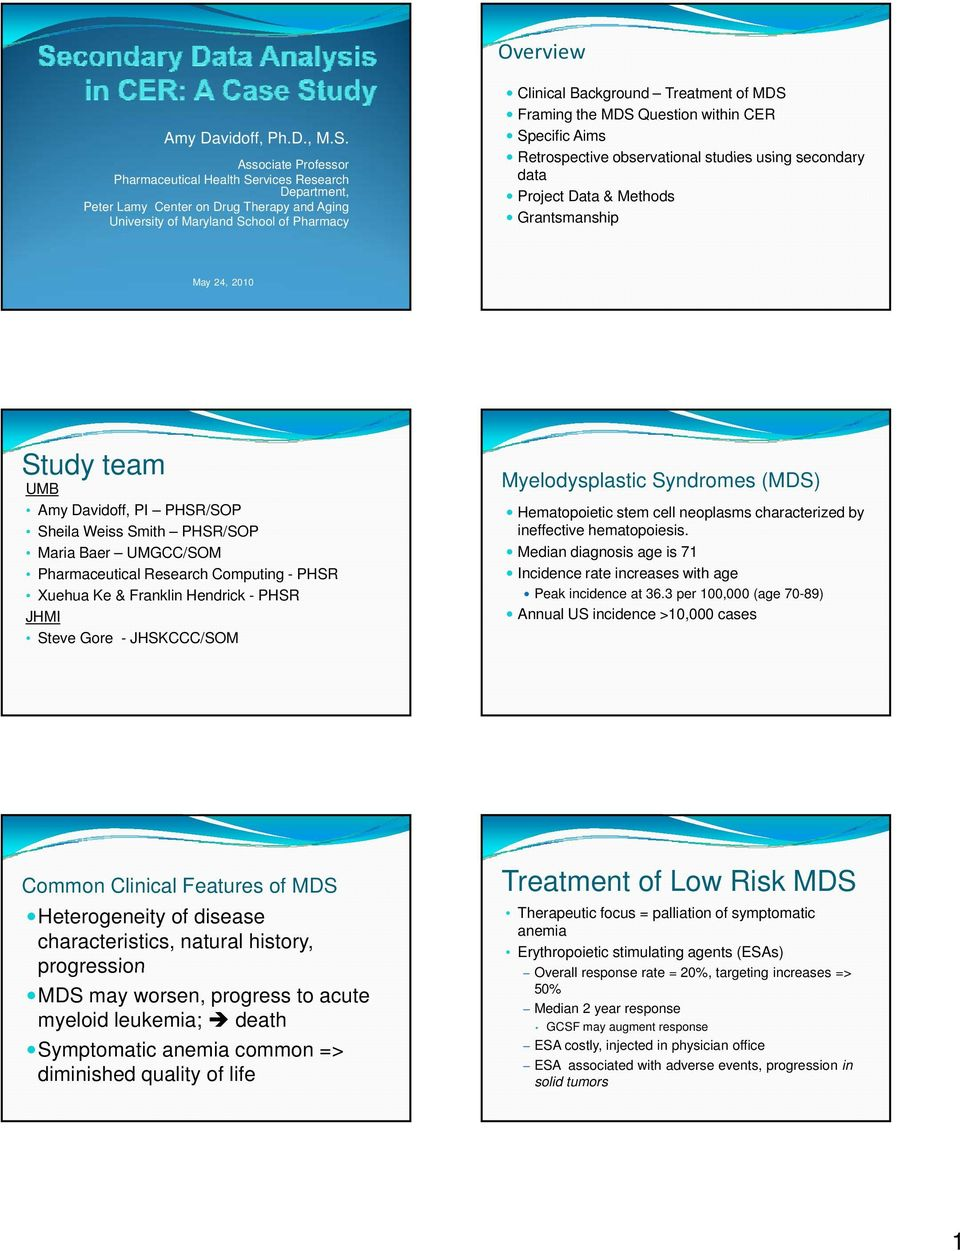 Framing the MDS Question within CER Specific Aims Retrospective observational studies using secondary data Project Data & Methods Grantsmanship May 24, 2010 Study team UMB Amy Davidoff, PI PHSR/SOP